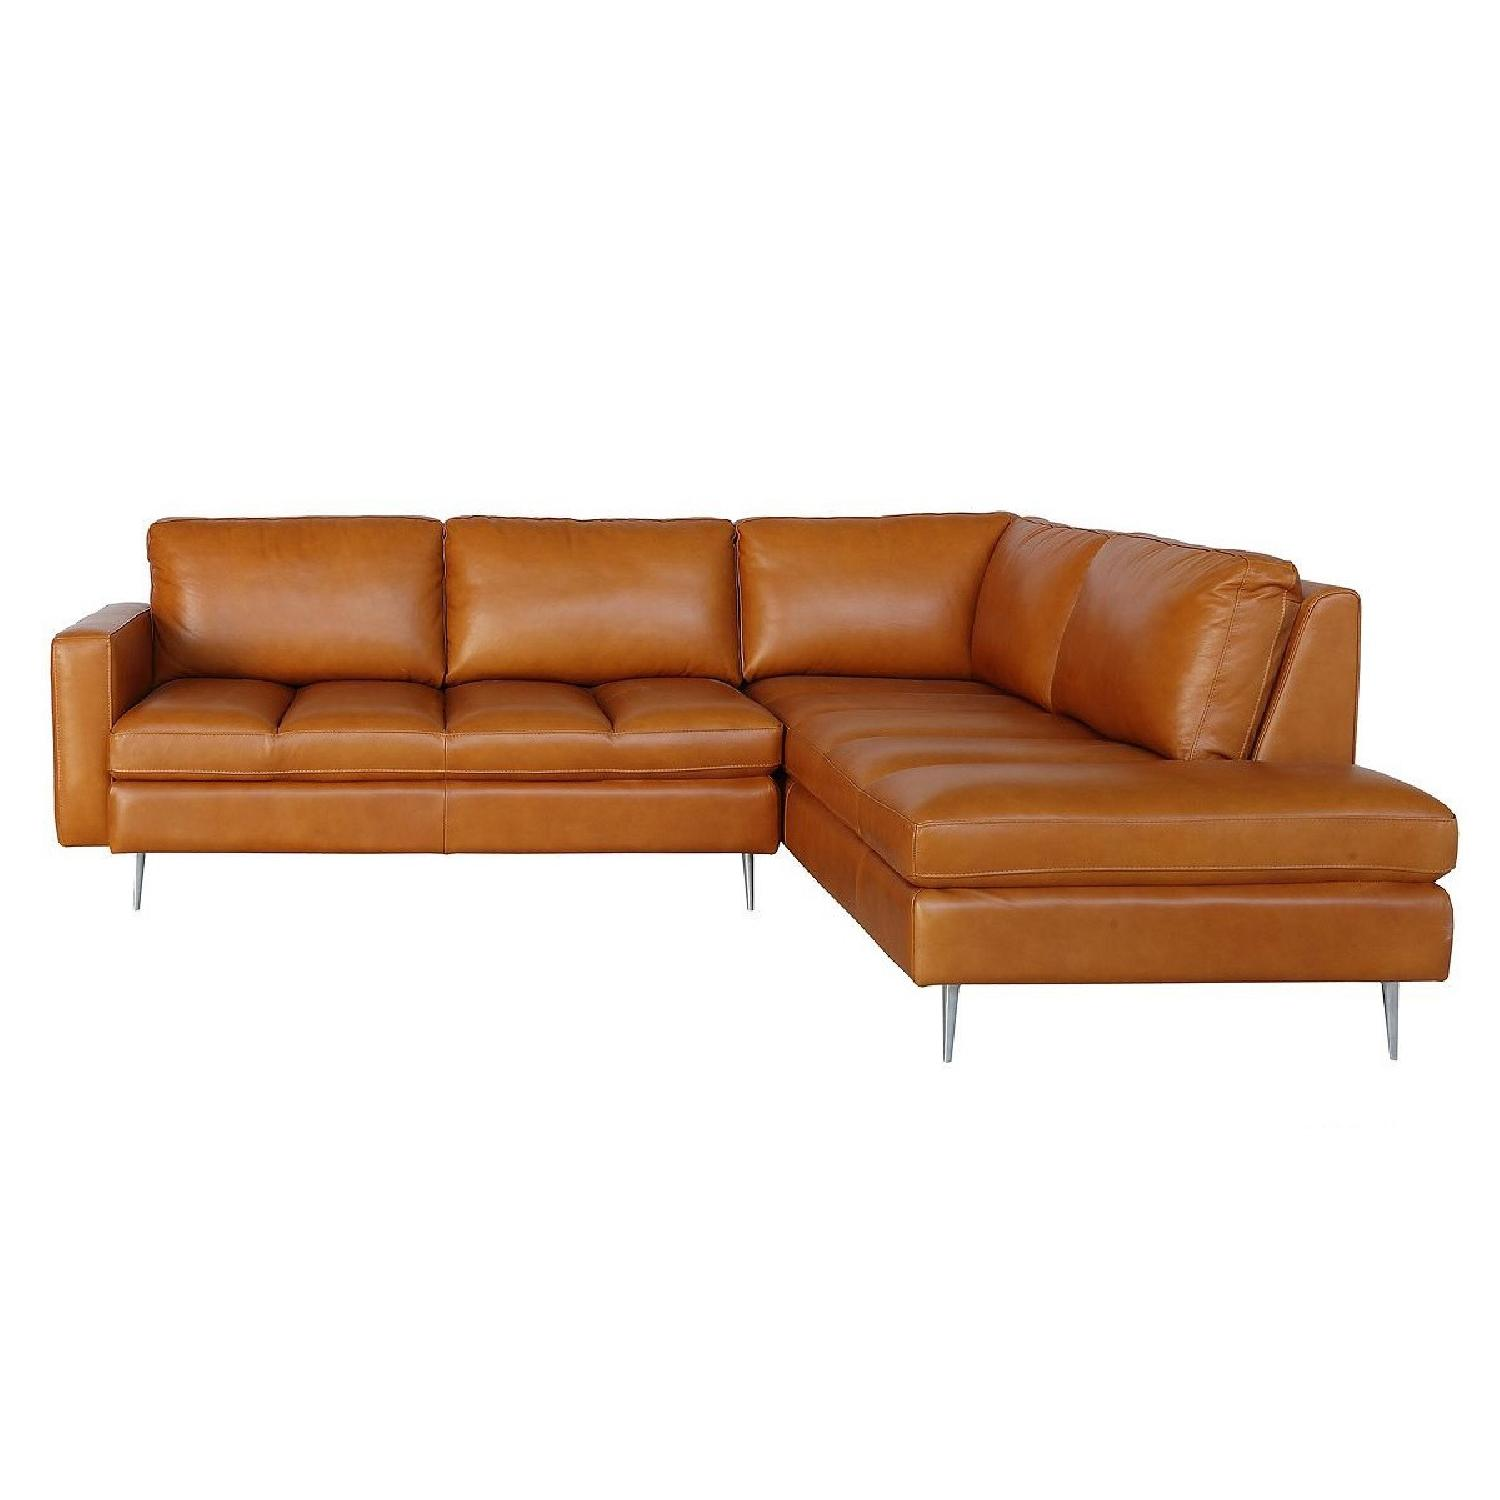 Chateau D'Ax Alexander Sectional Sofa + Chair & Ottoman - image-0